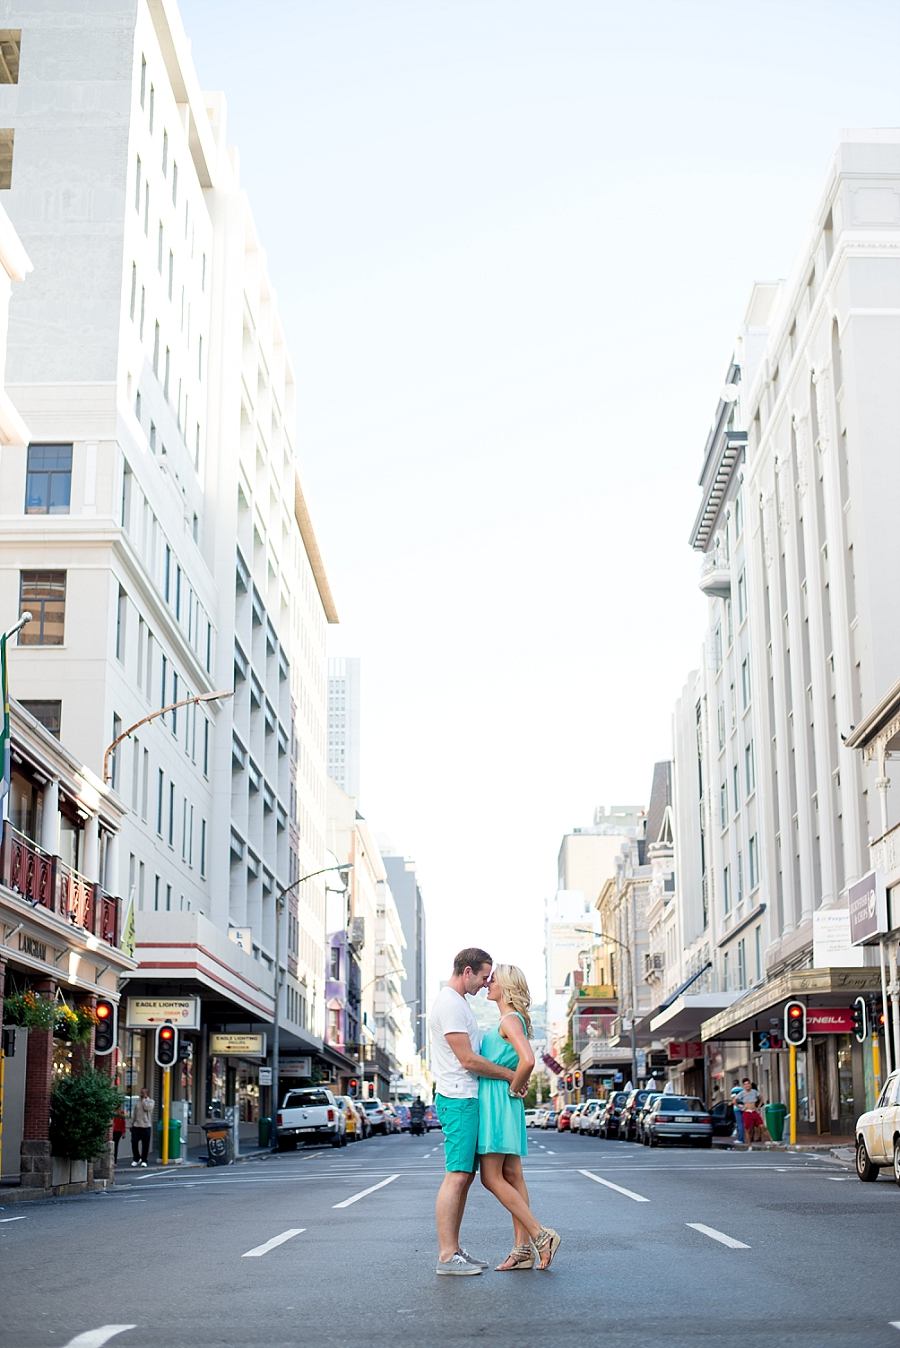 Darren Bester Photography - Engagement Shoot - David and Claire_0007.jpg